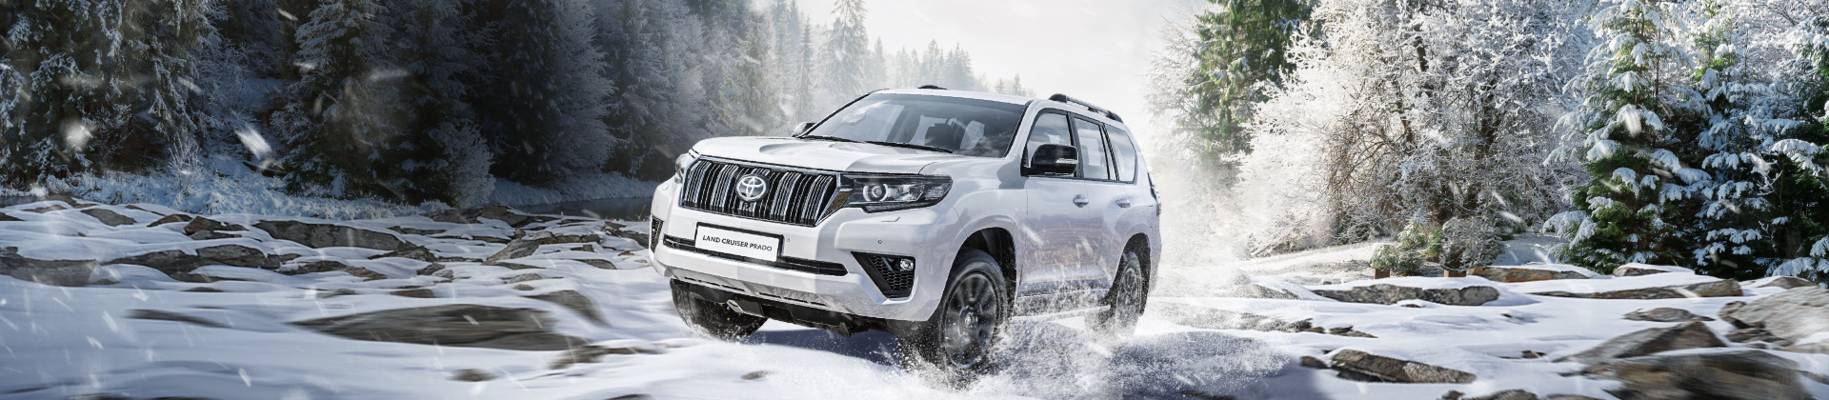 Новый Toyota Land Cruiser Prado - описание Тойота Ленд Крузер Прадо